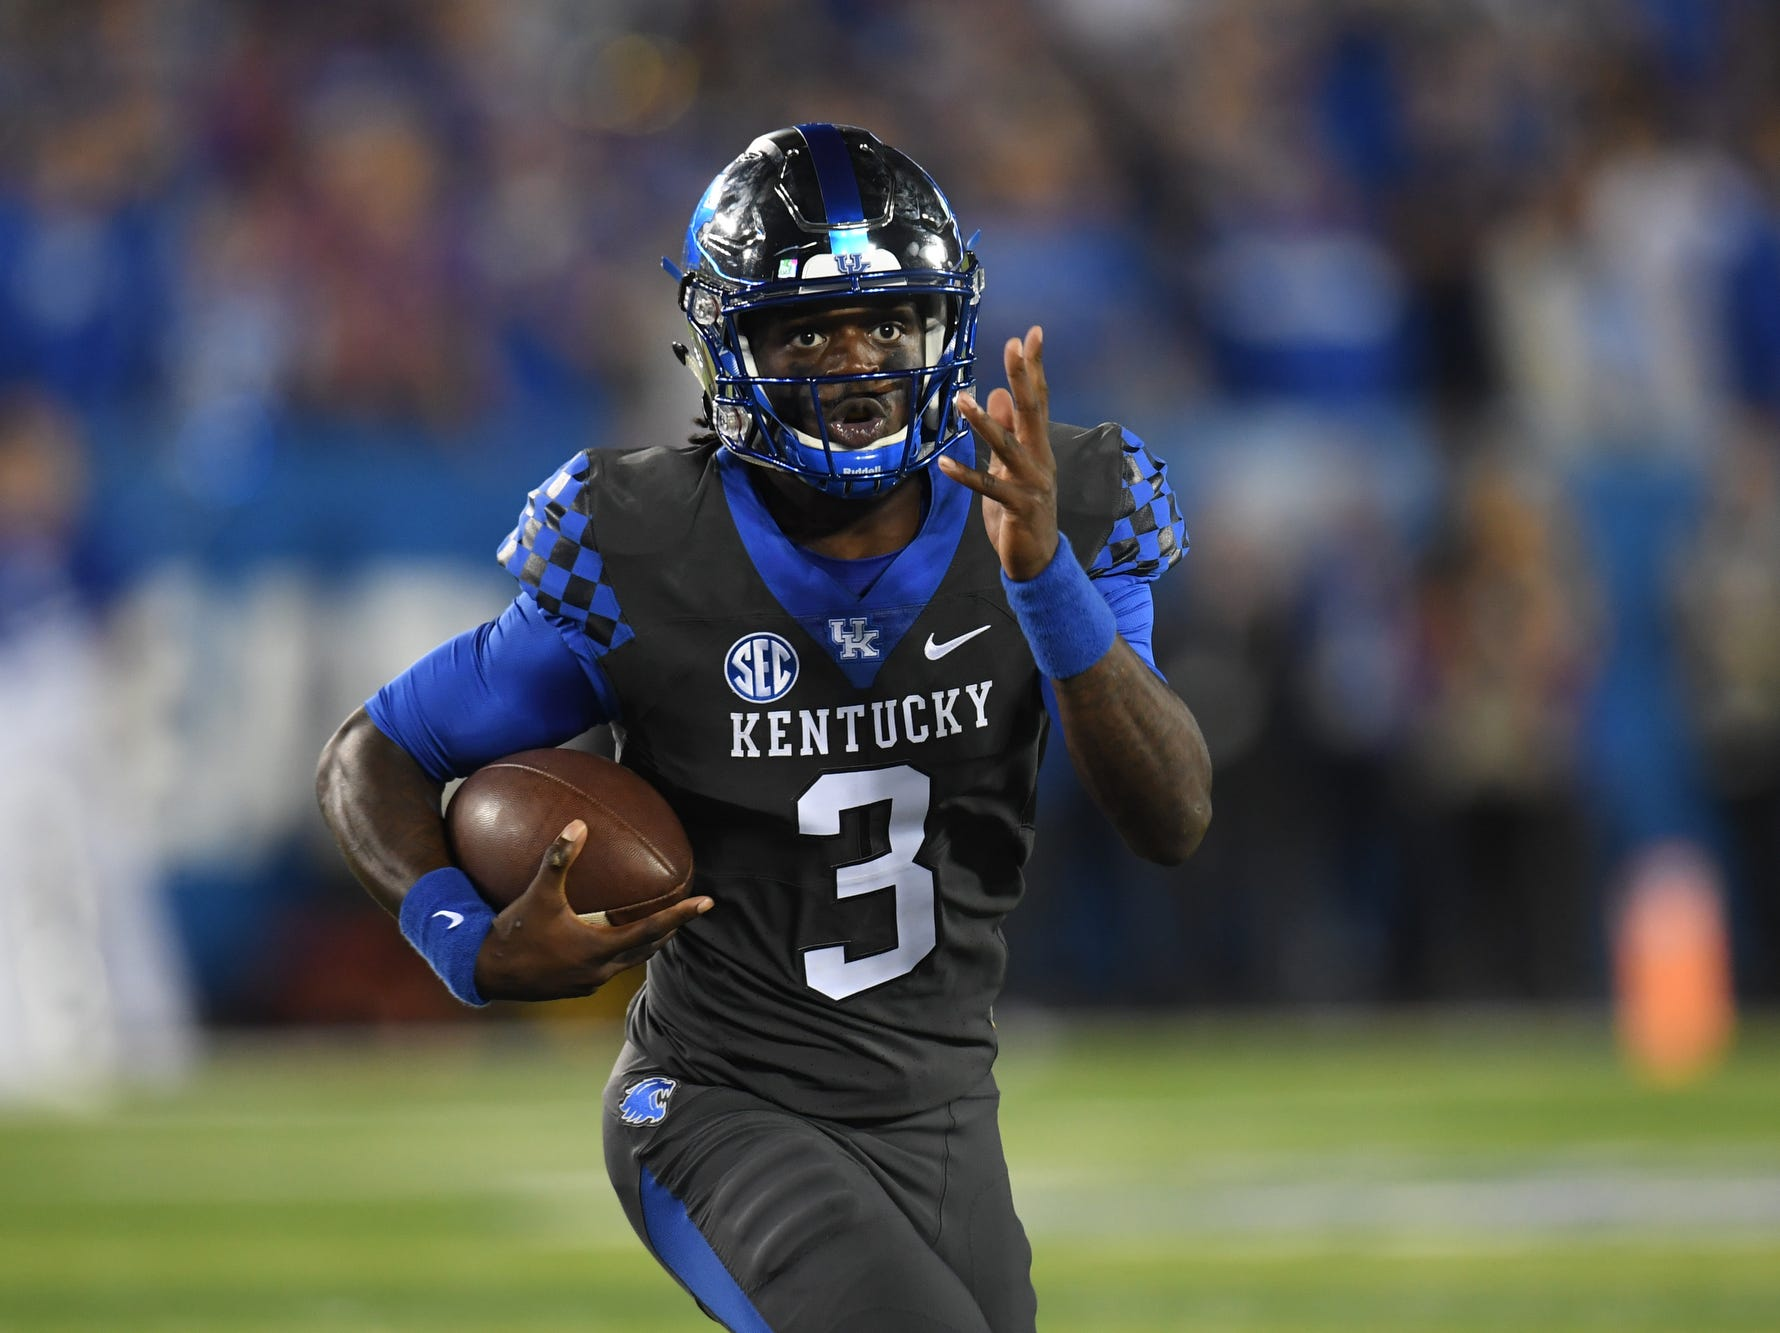 UK QB Terry Wilson runs the ball during the University of Kentucky football game against South Carolina at Kroger Field in Lexington, Kentucky on Saturday, September 29, 2018.